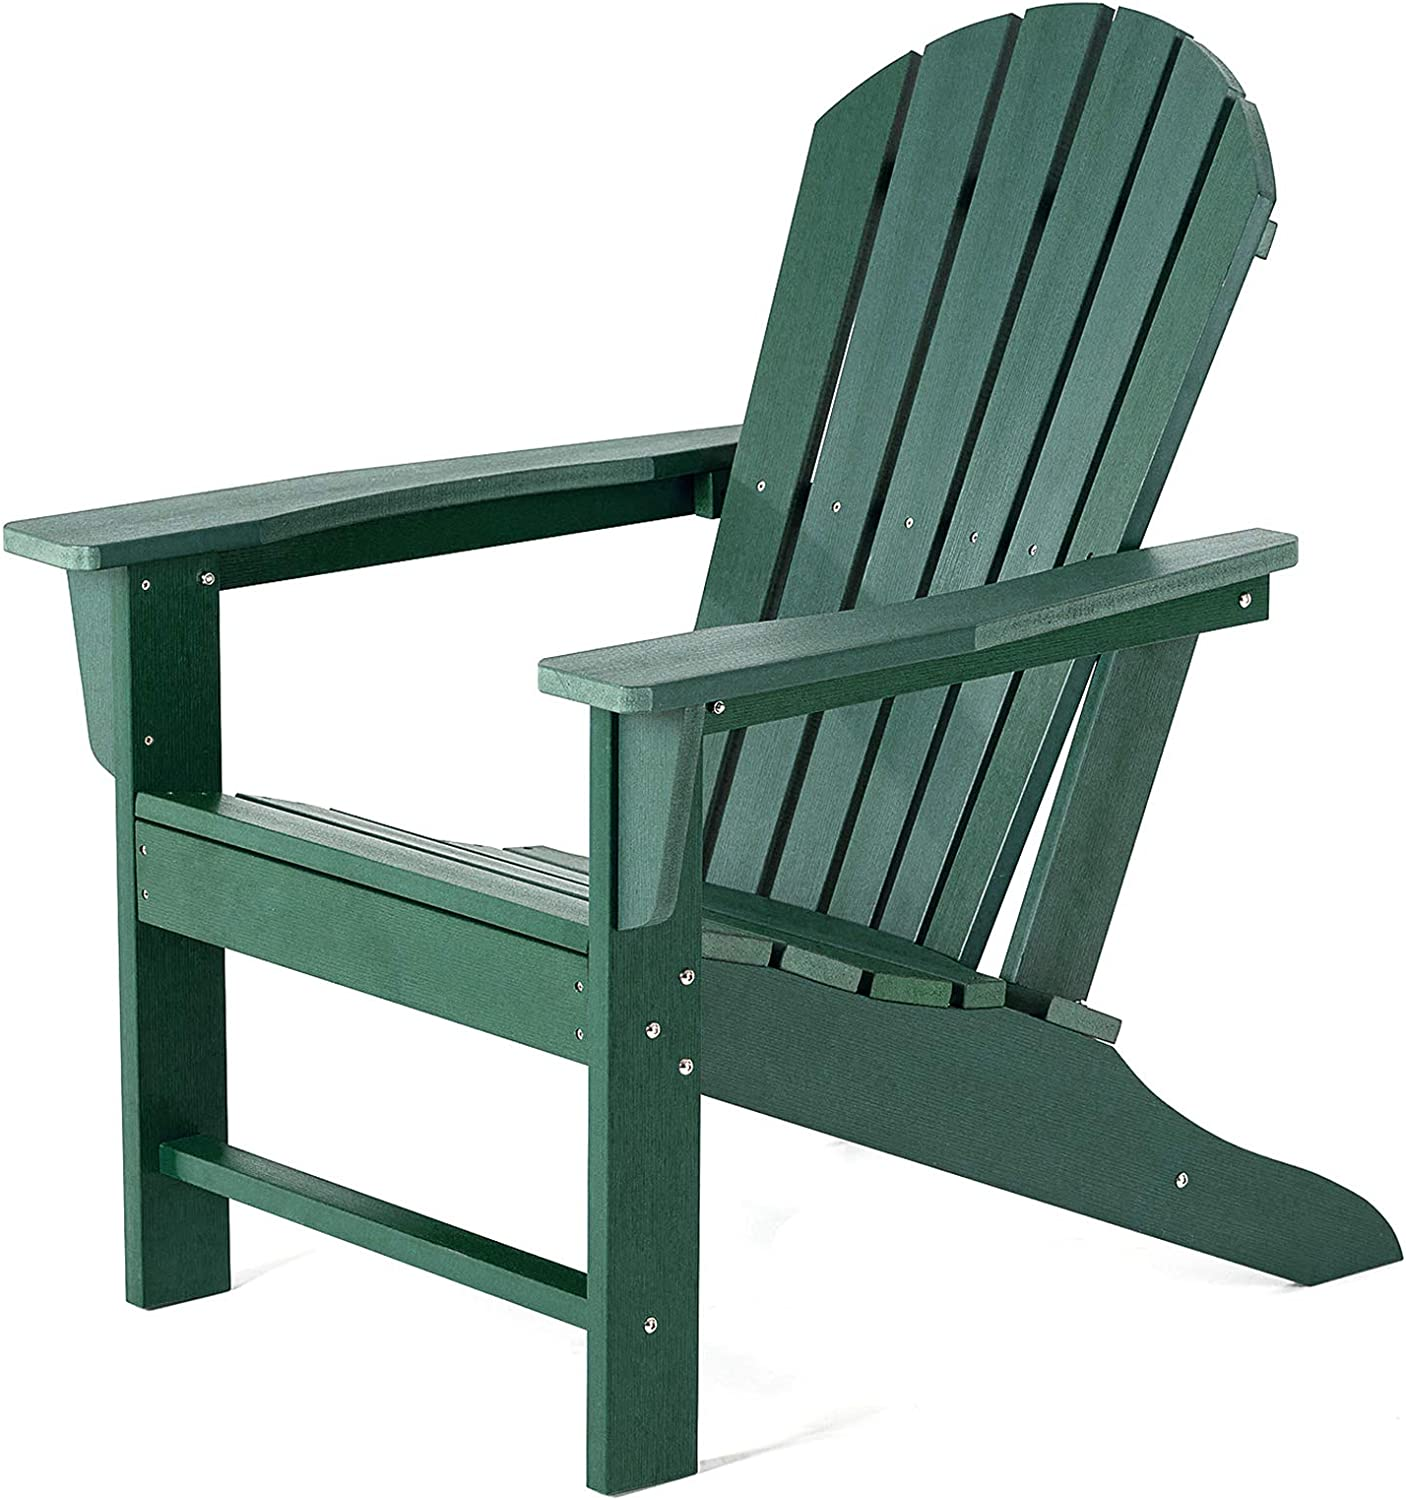 SERWALL Adirondack Chair | Adult-Size, Weather Resistant for Patio Deck Garden, Backyard & Lawn Furniture | Easy Maintenance & Classic Adirondack Chair Design (Green)